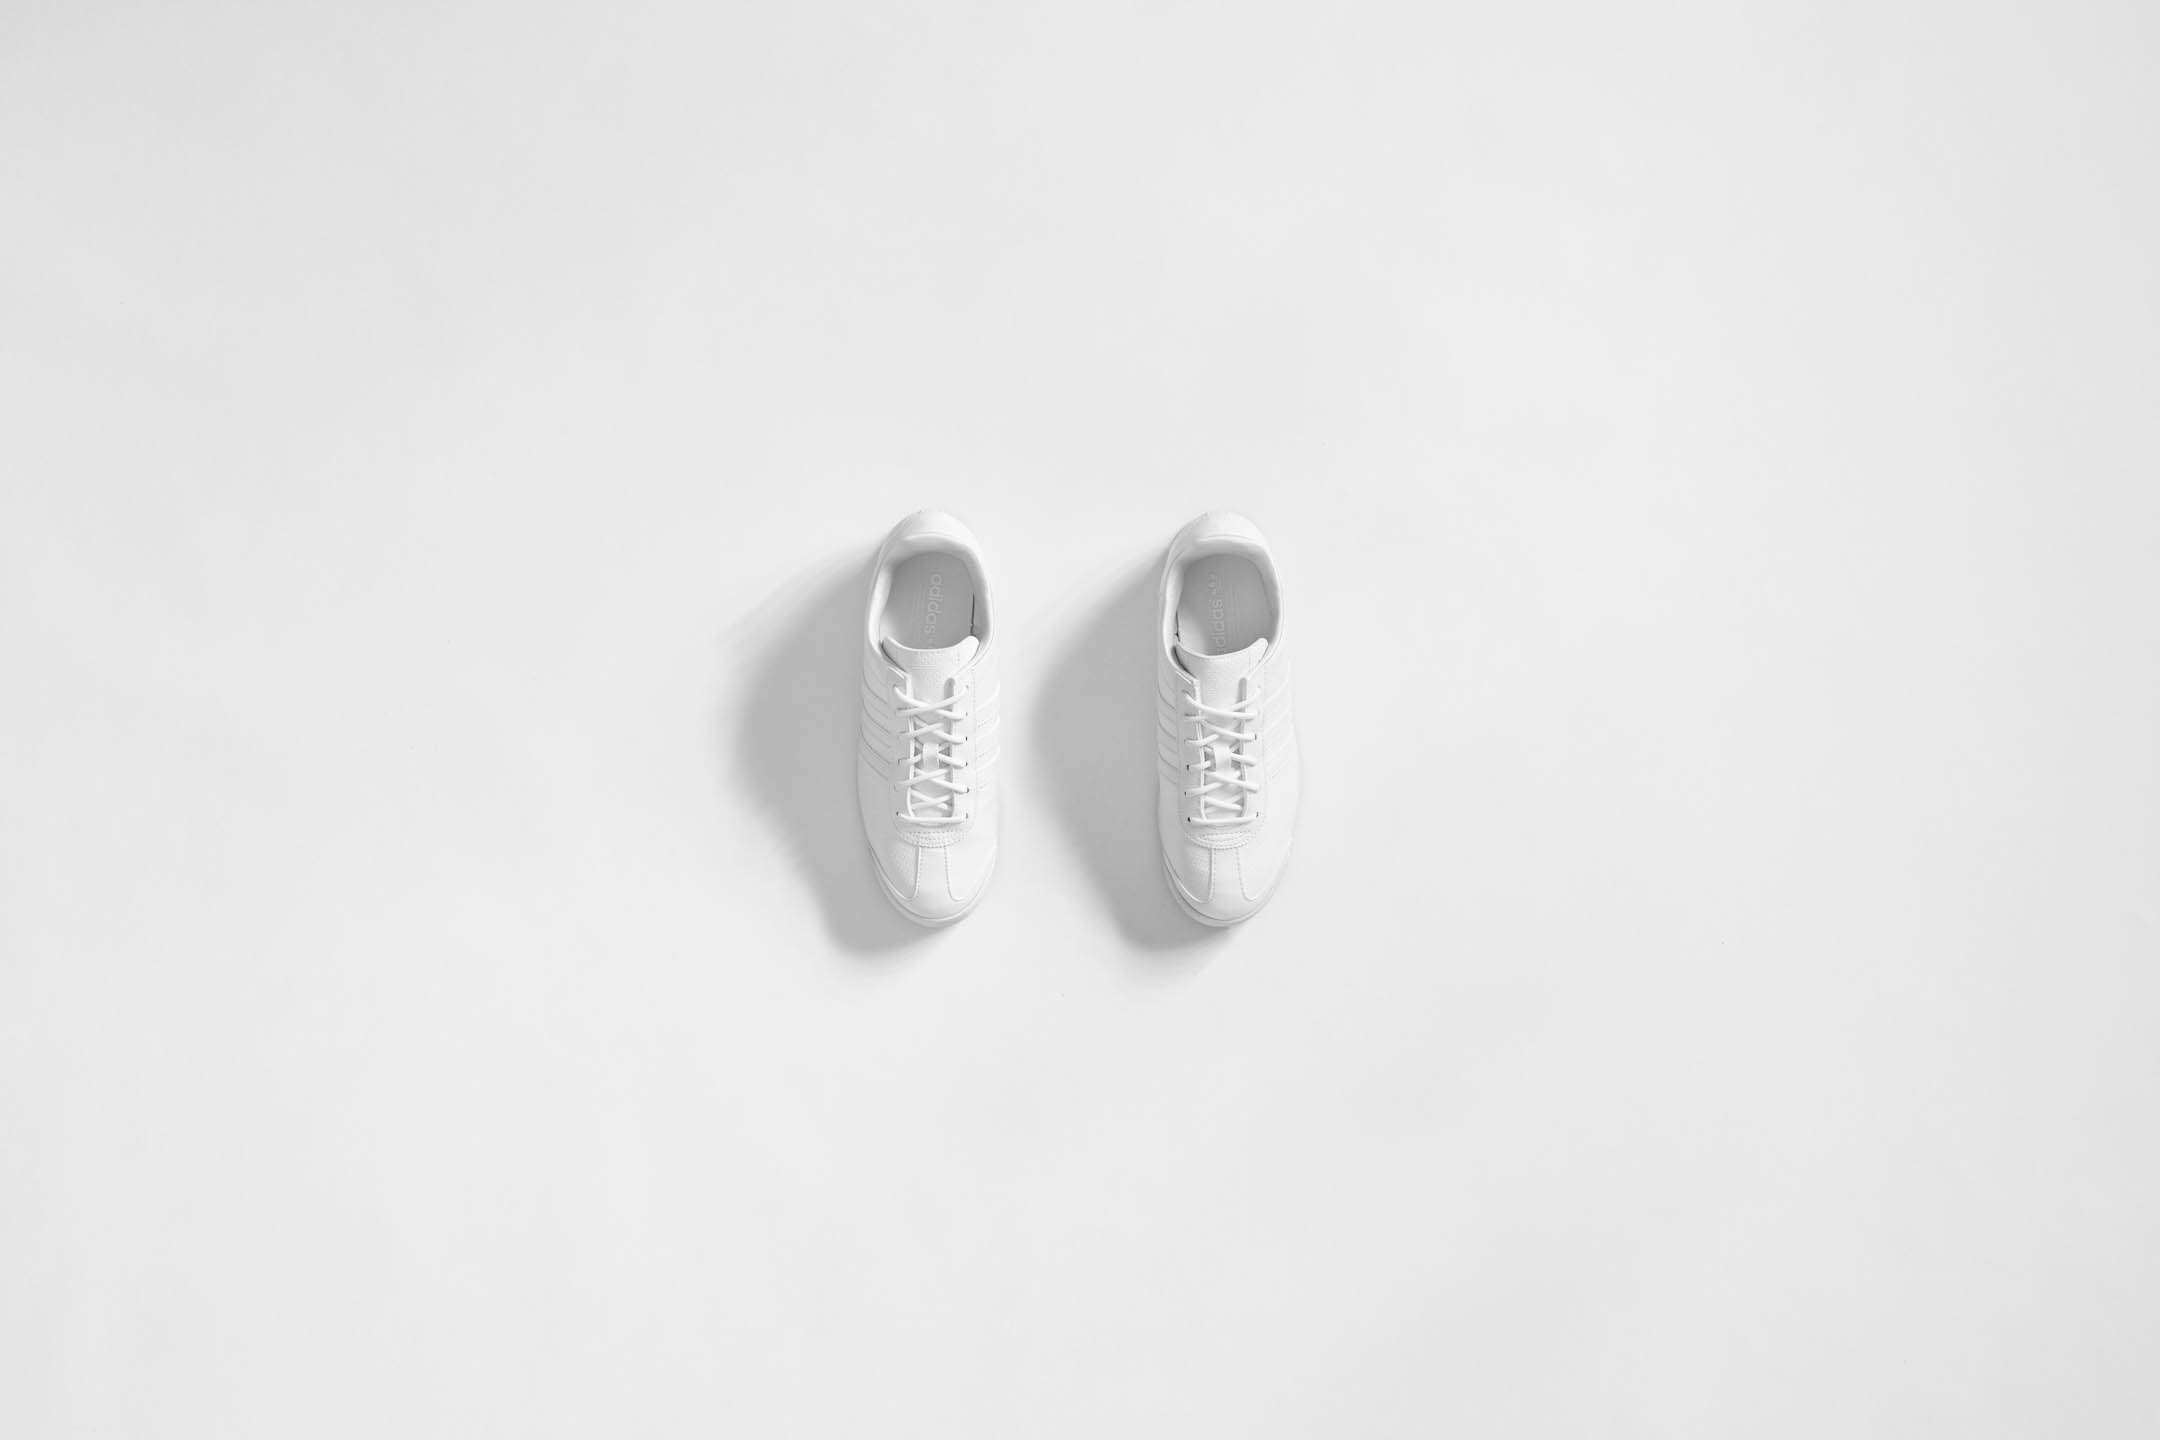 Adidas white sneakers by Steve Temple Photography